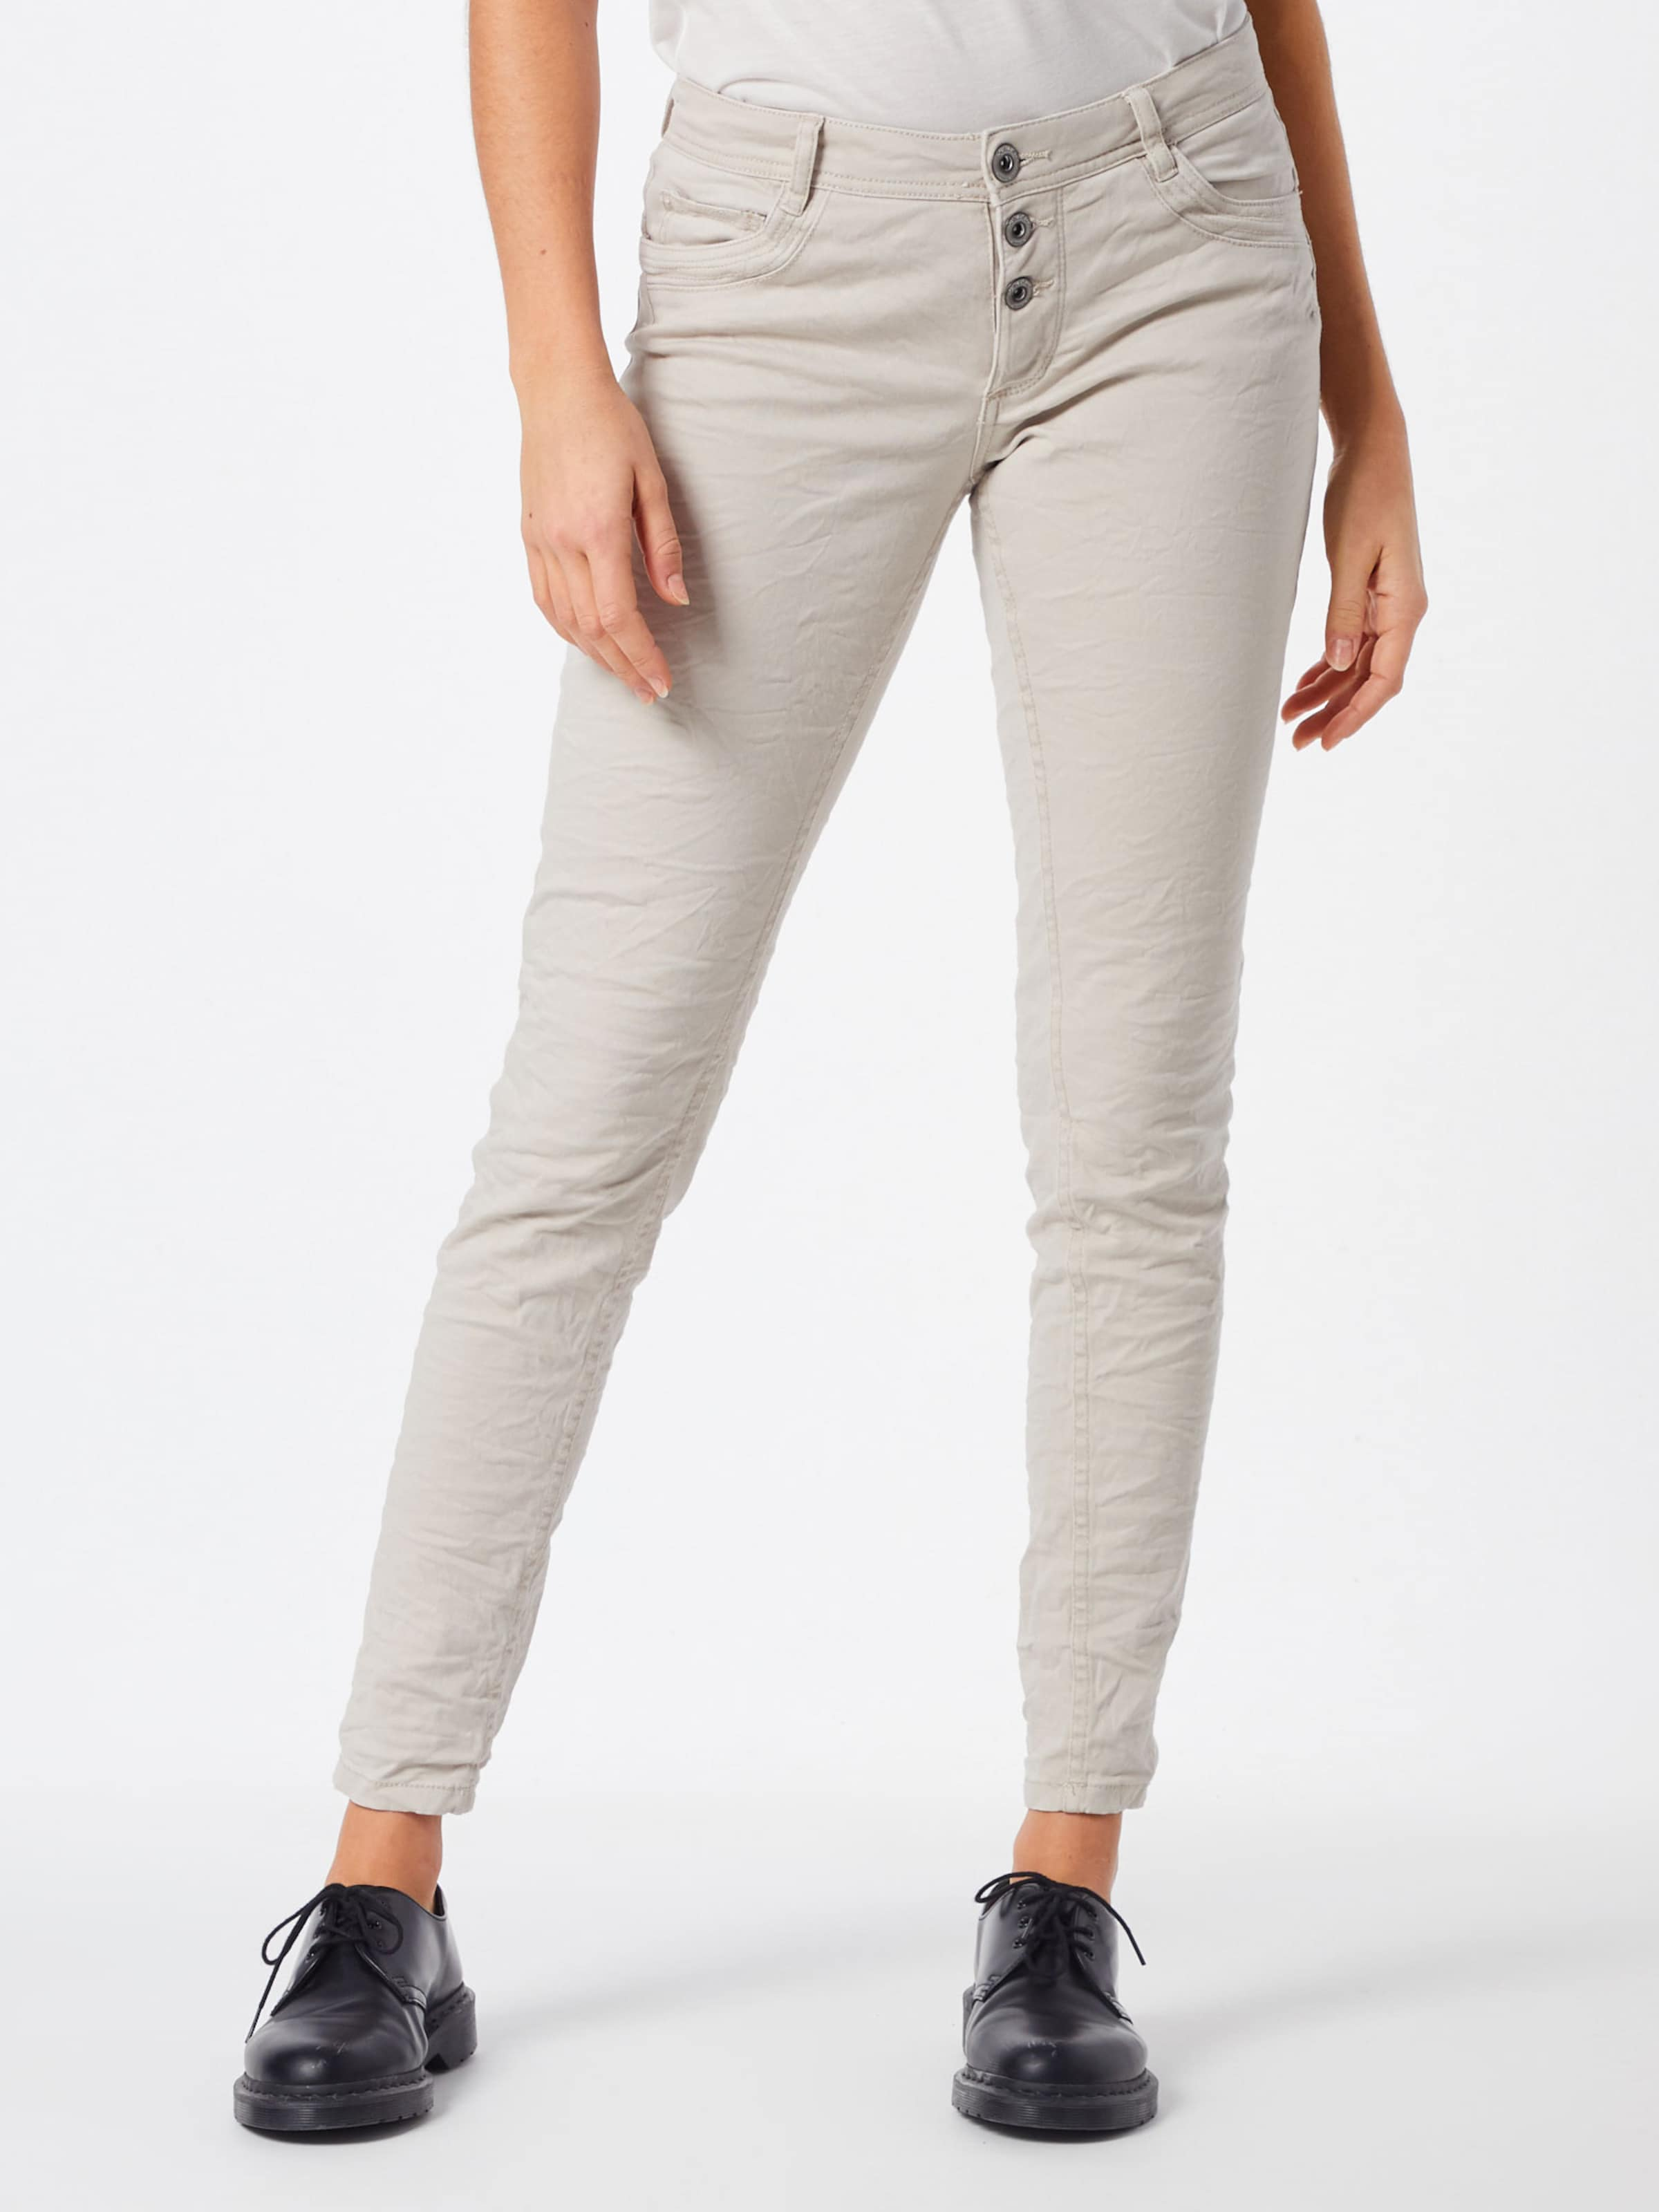 Beige Pantalon Sublevel Sublevel Sublevel Pantalon En Beige En b6gyvYf7